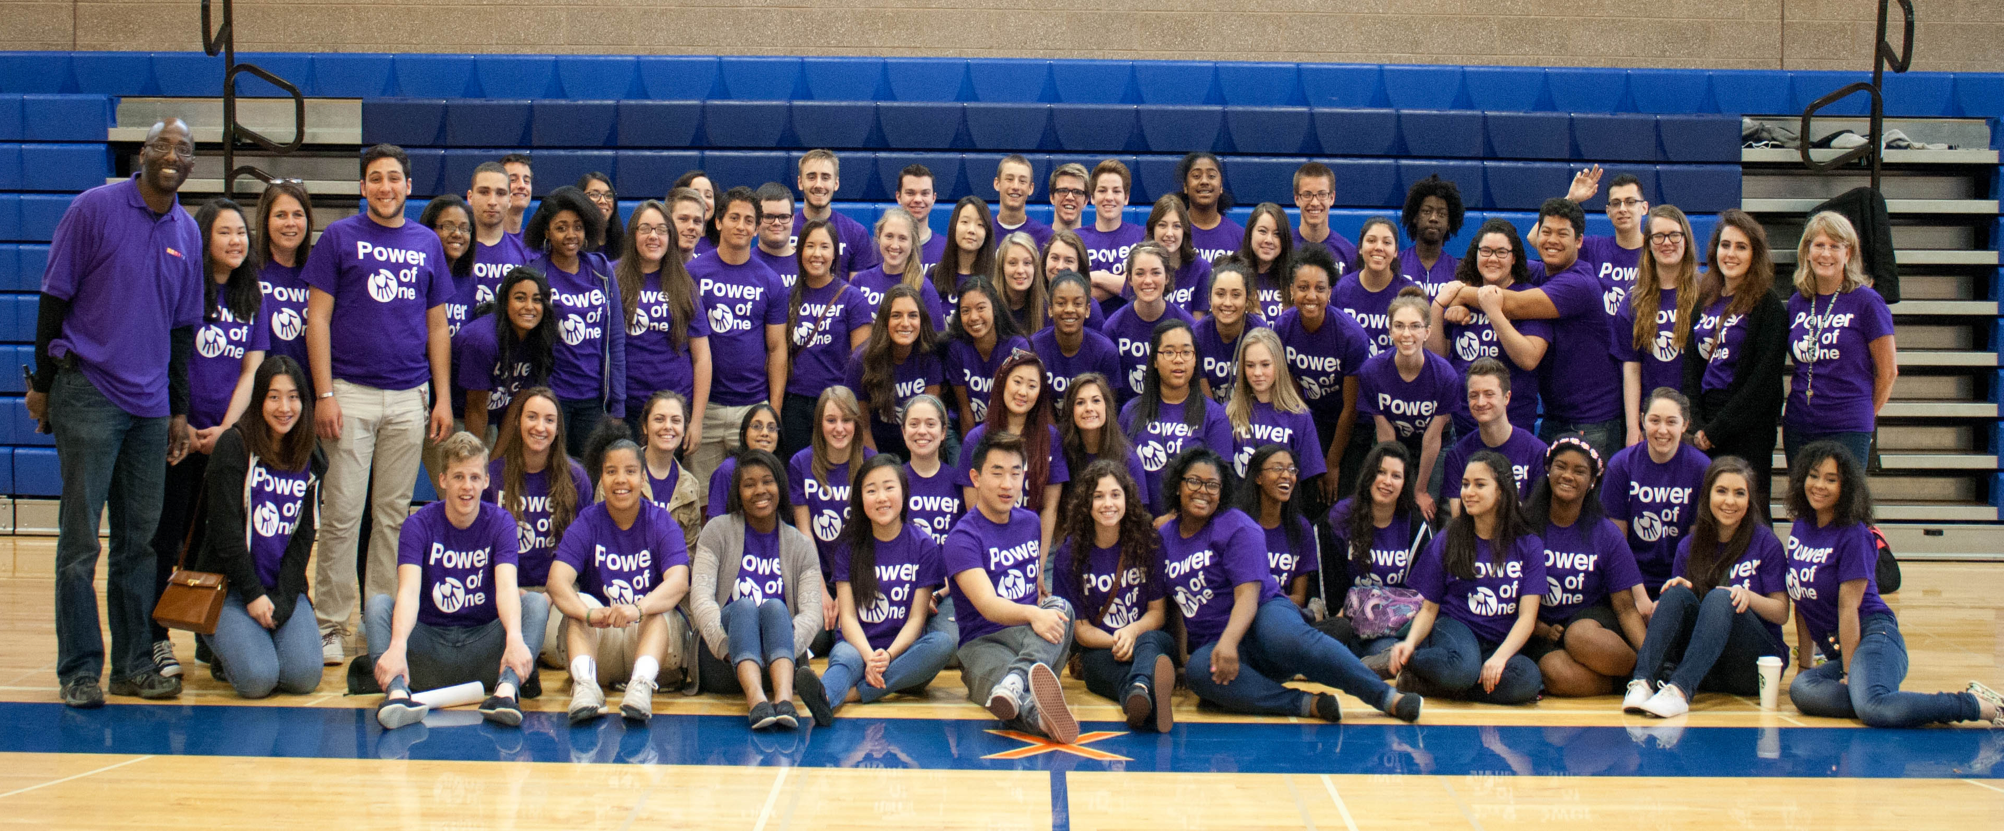 LHS Power of One Ambassadors take a group photo after leading an amazing Po1 for their freshman, 9th grade advisors, and their administration. Bravo team! #IgniteNation